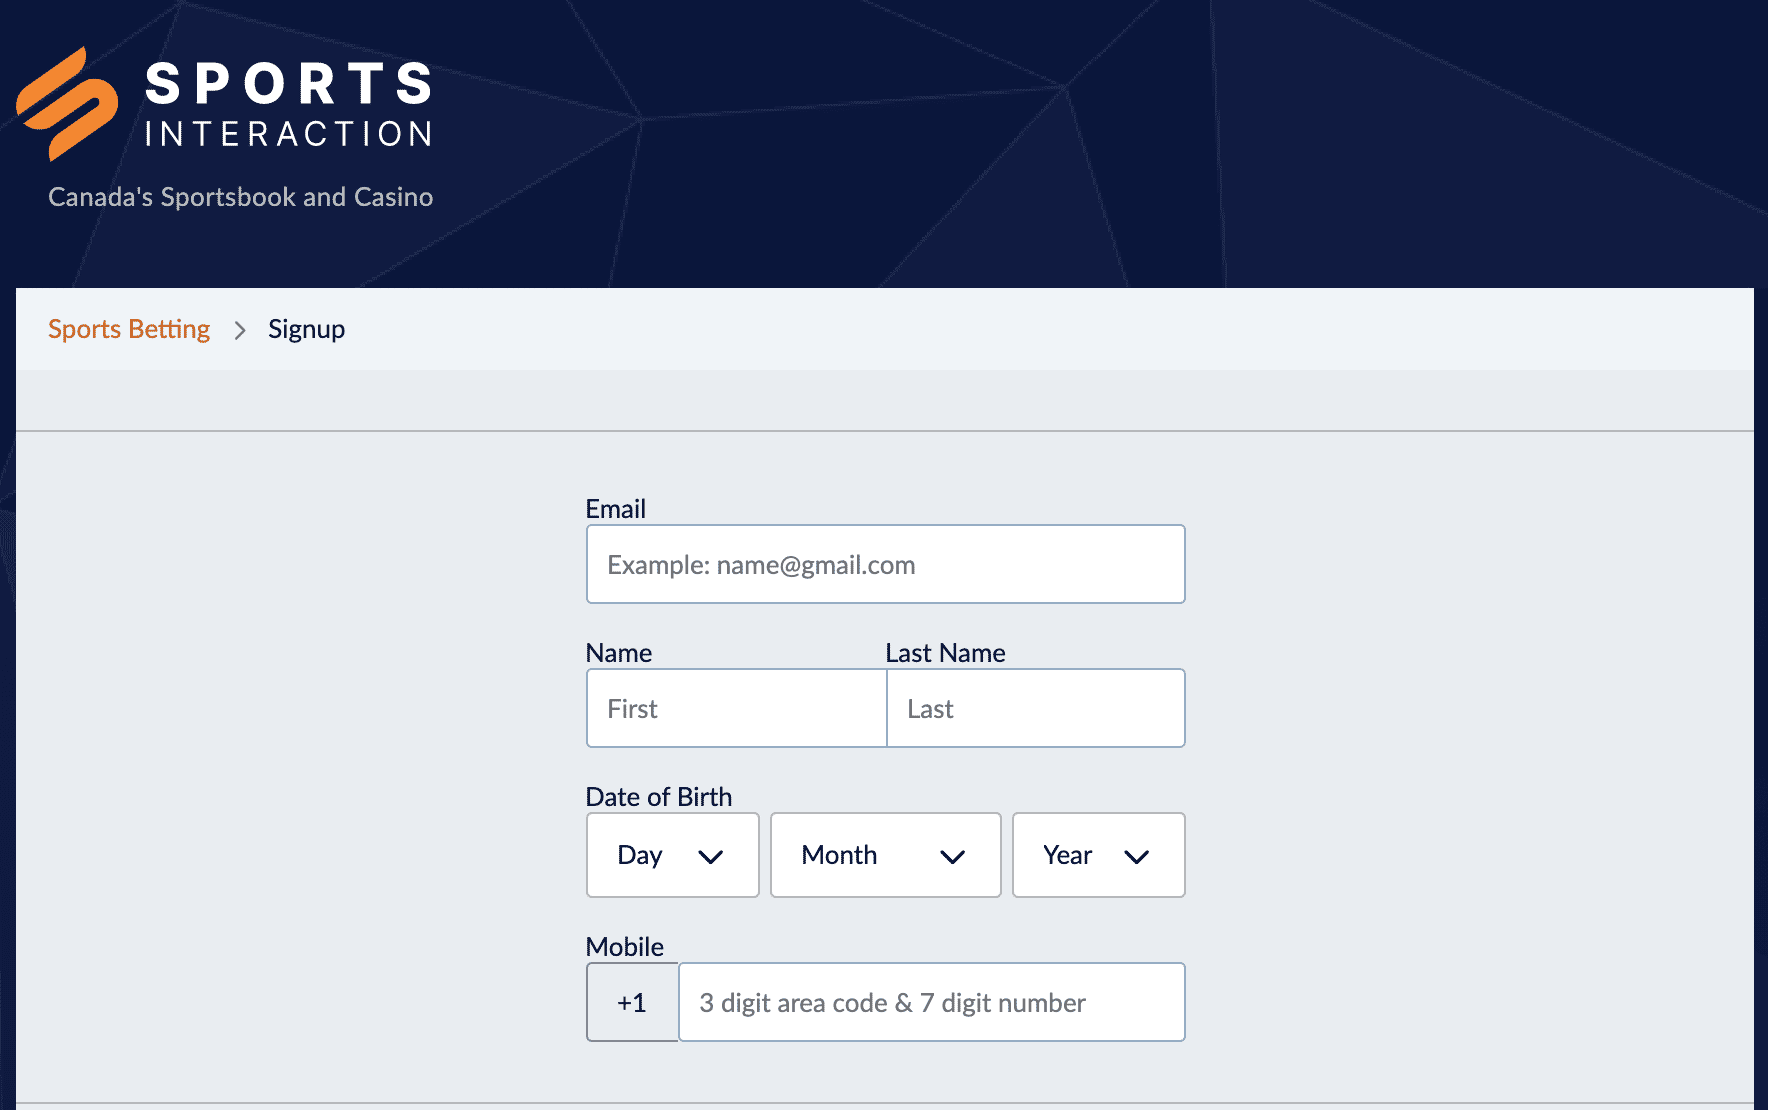 Sports Interaction Signup